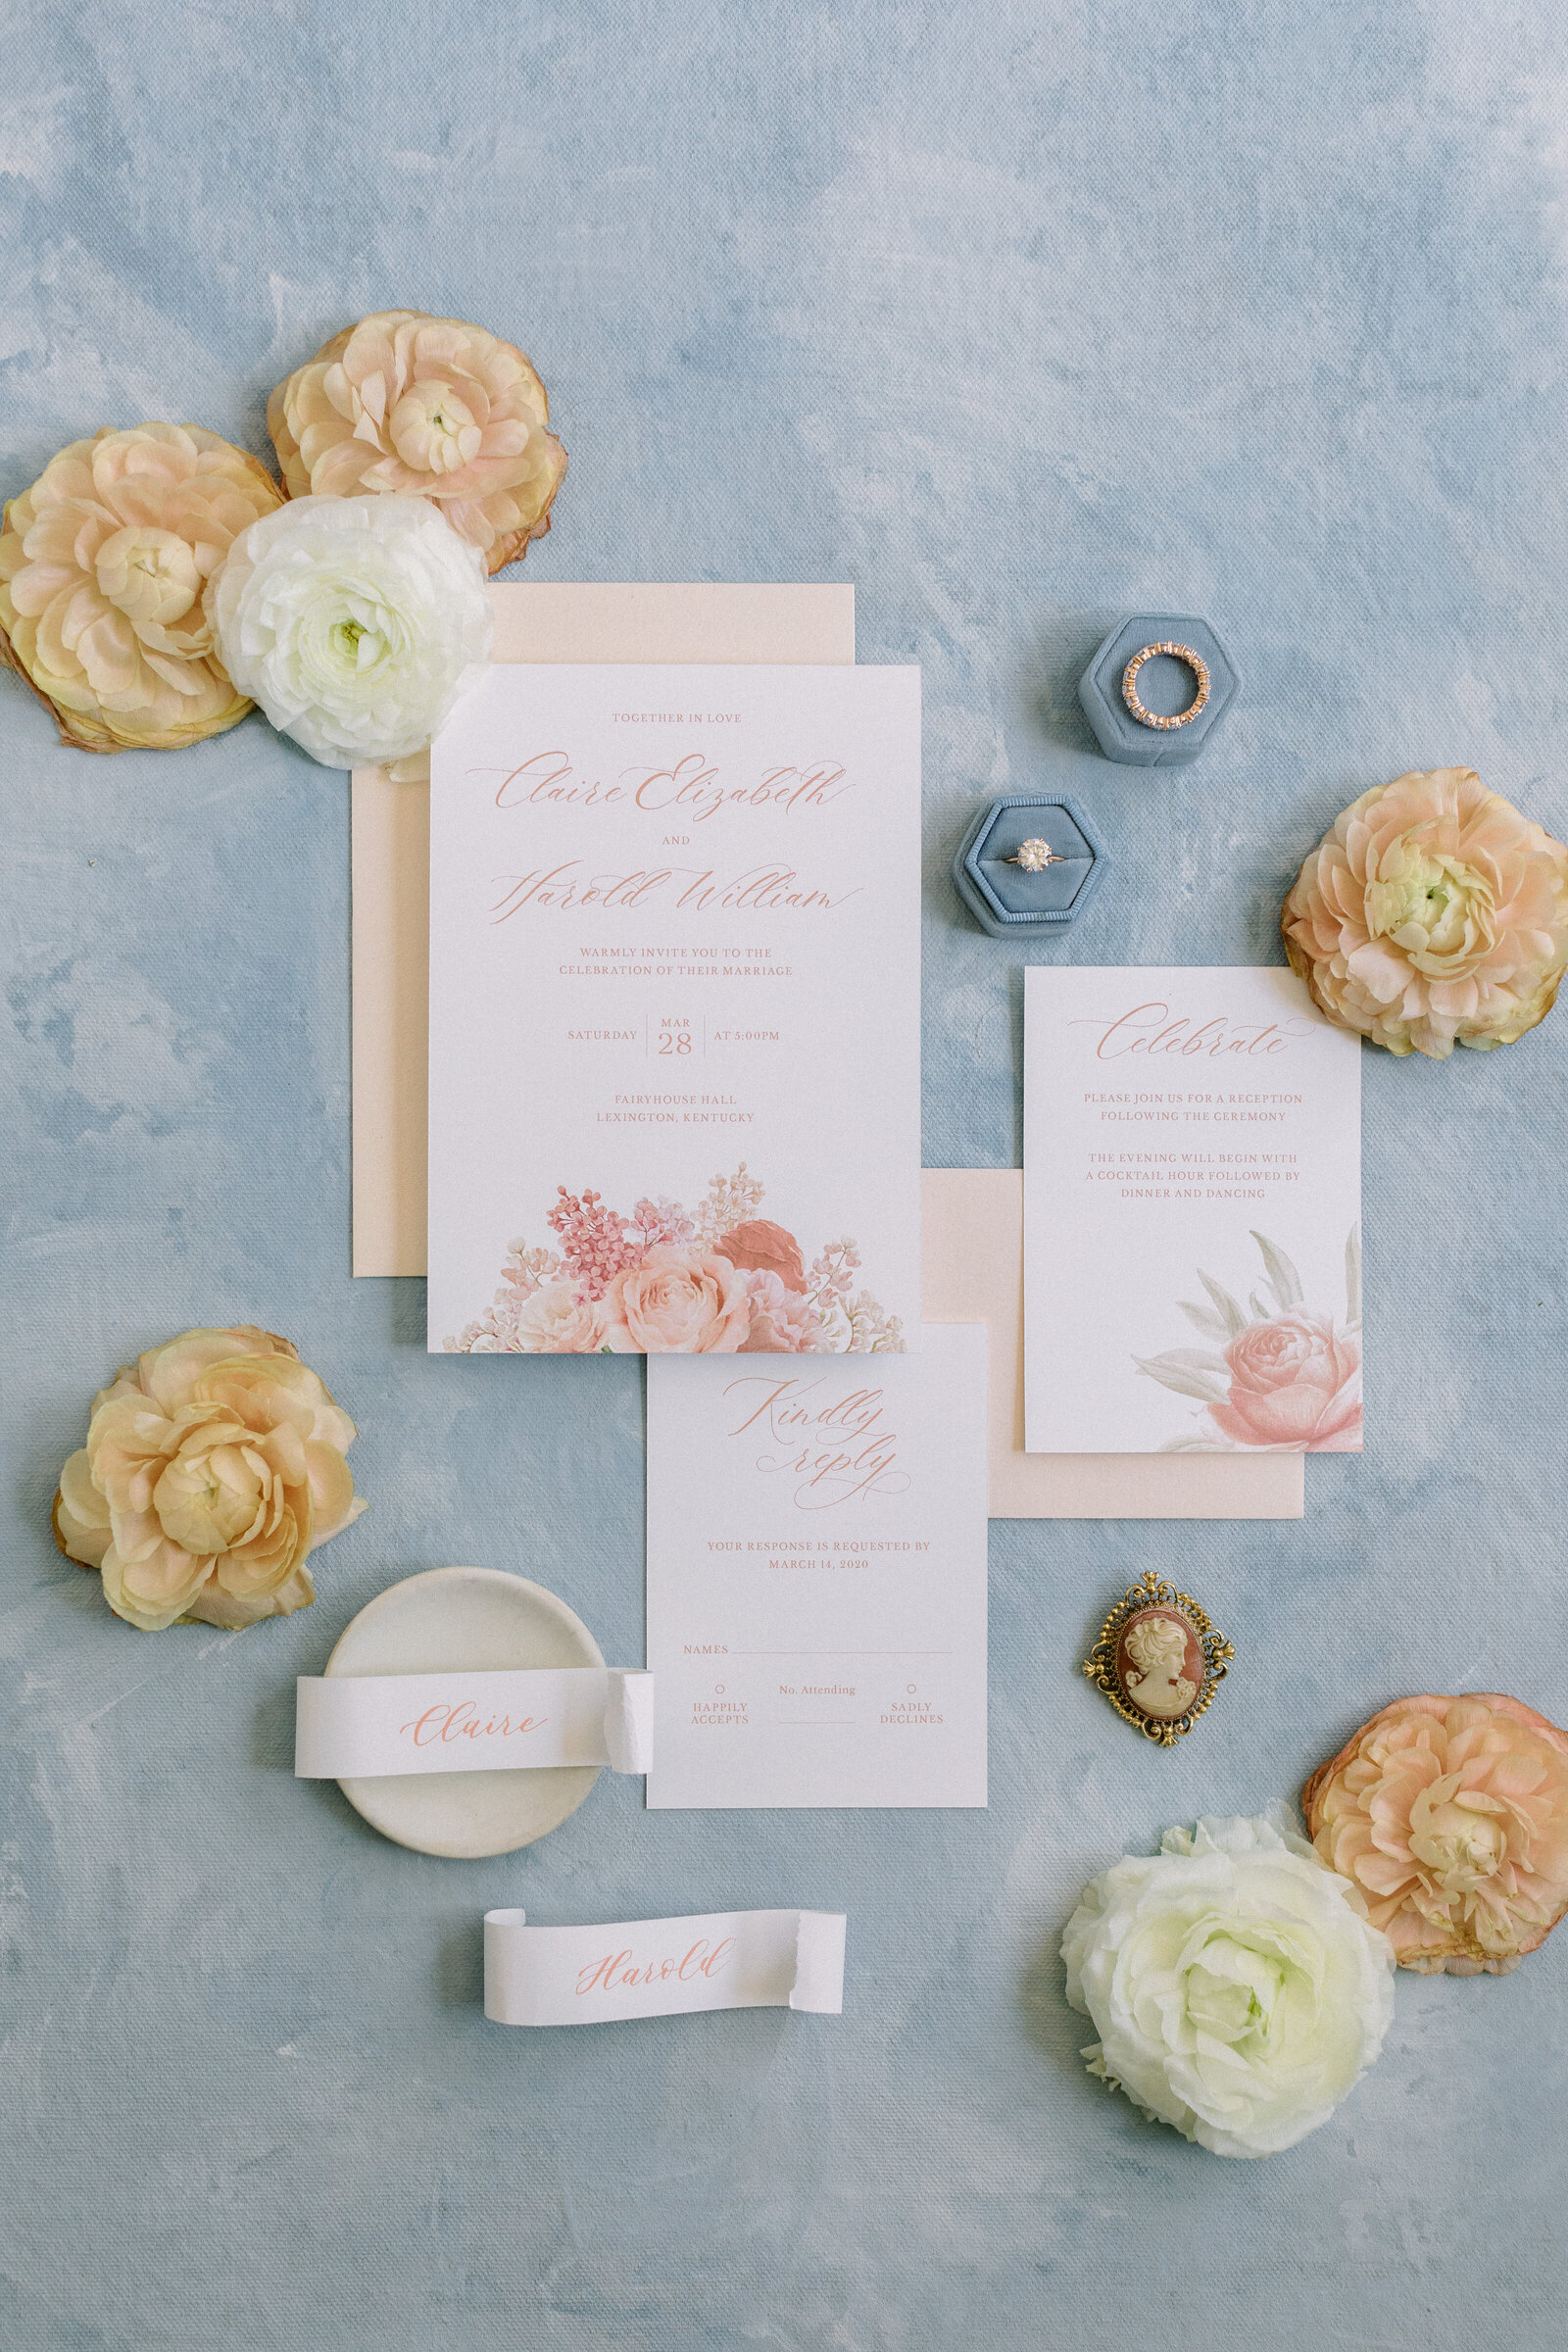 stationary and flowers